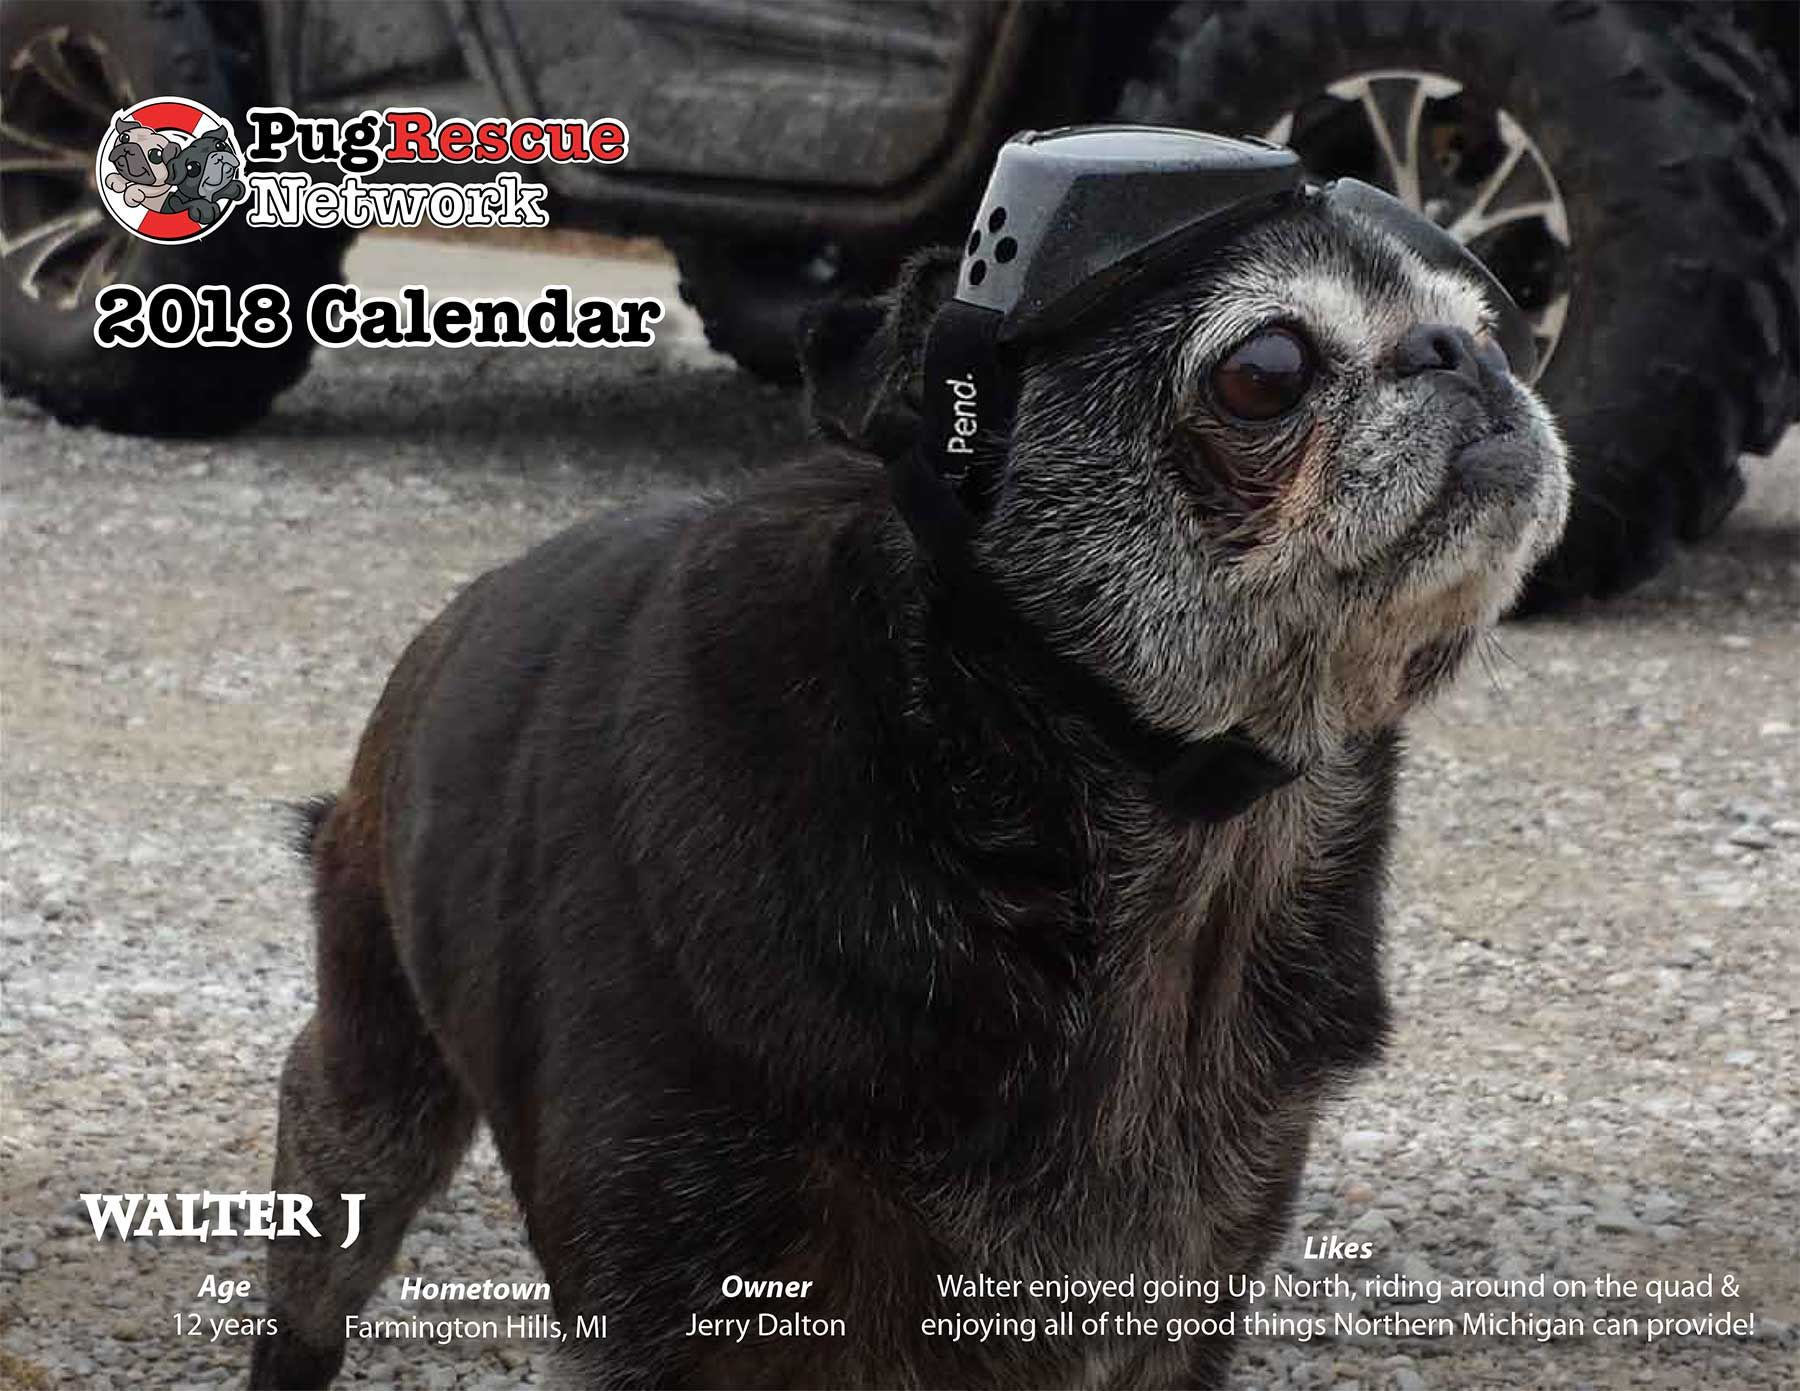 Pug Rescue Network S 2018 Calendar On Sale Now For Only 10 Plus